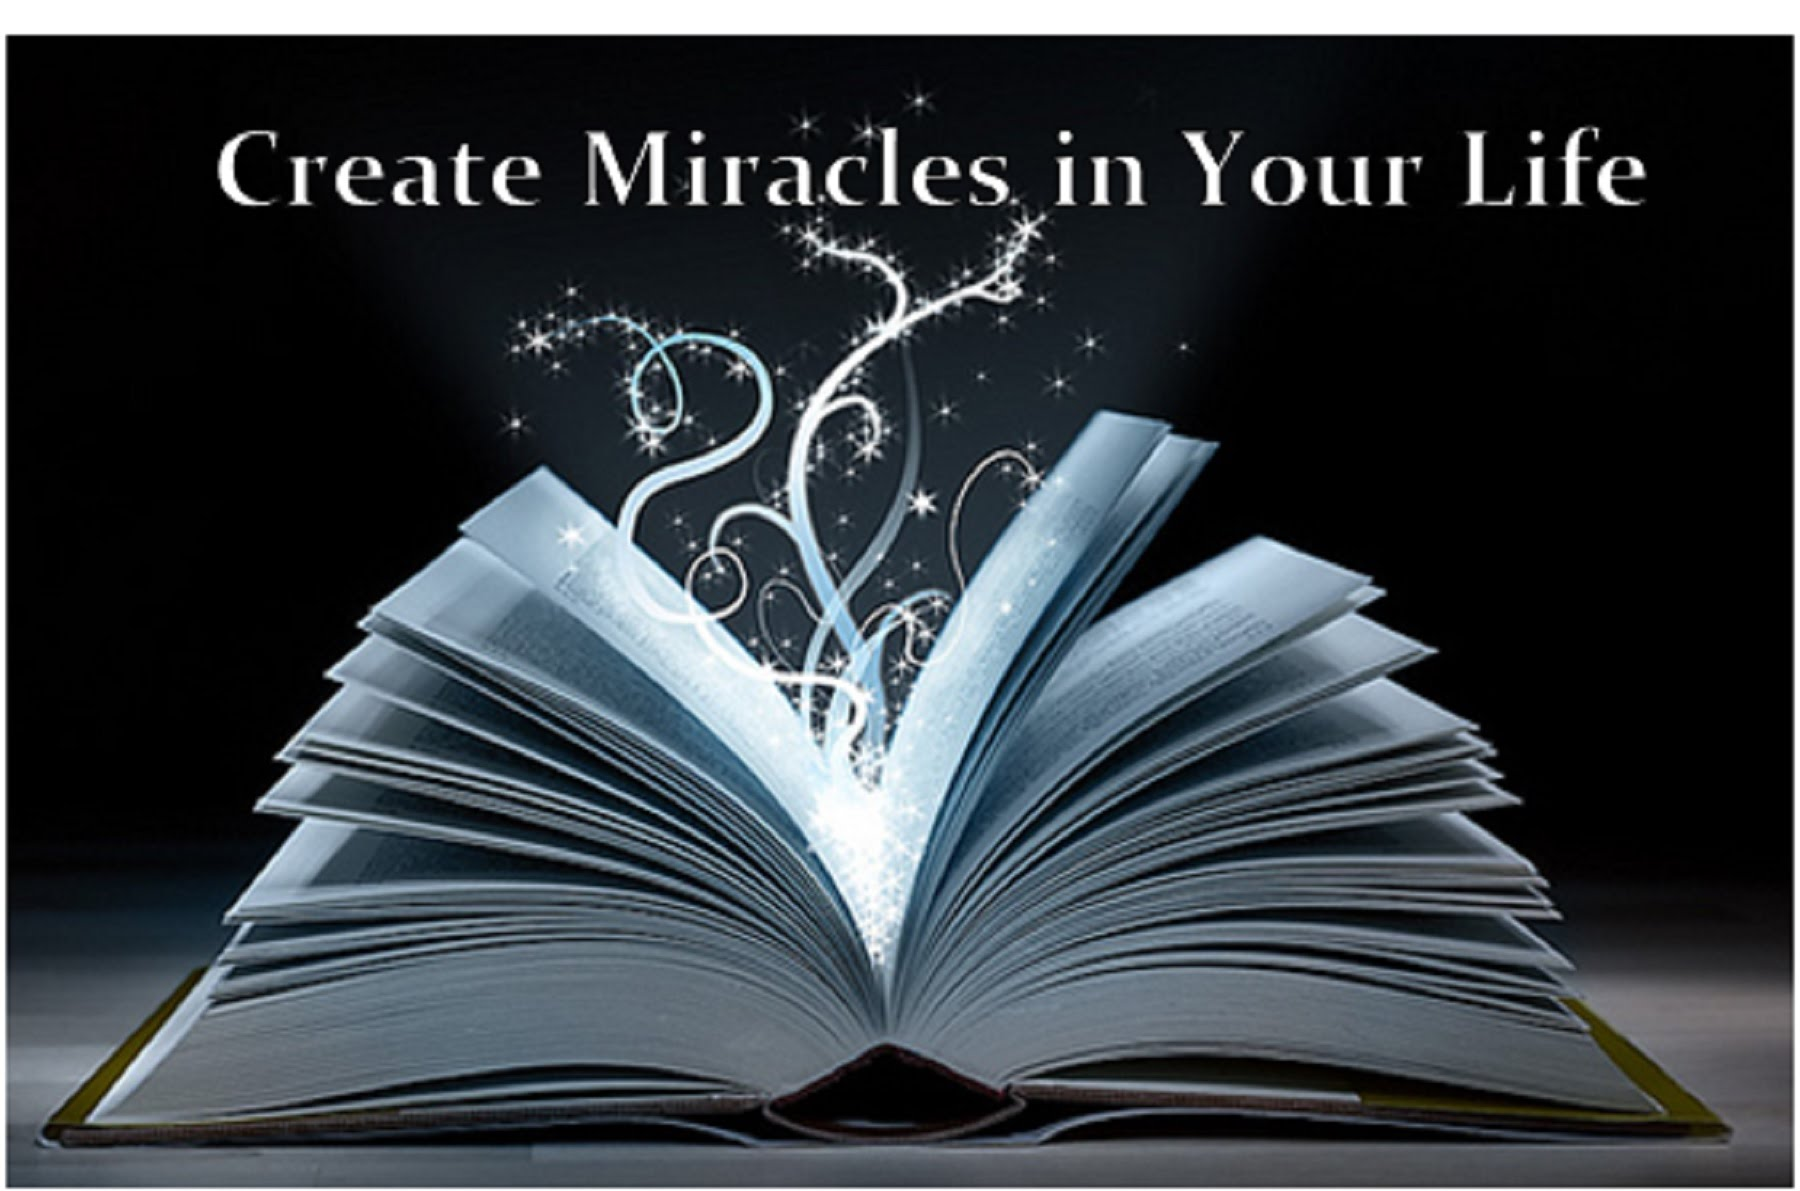 How To Attract Miracles Into Your Personal and Business LifeHow To Attract Miracles Into Your Personal and Business Life